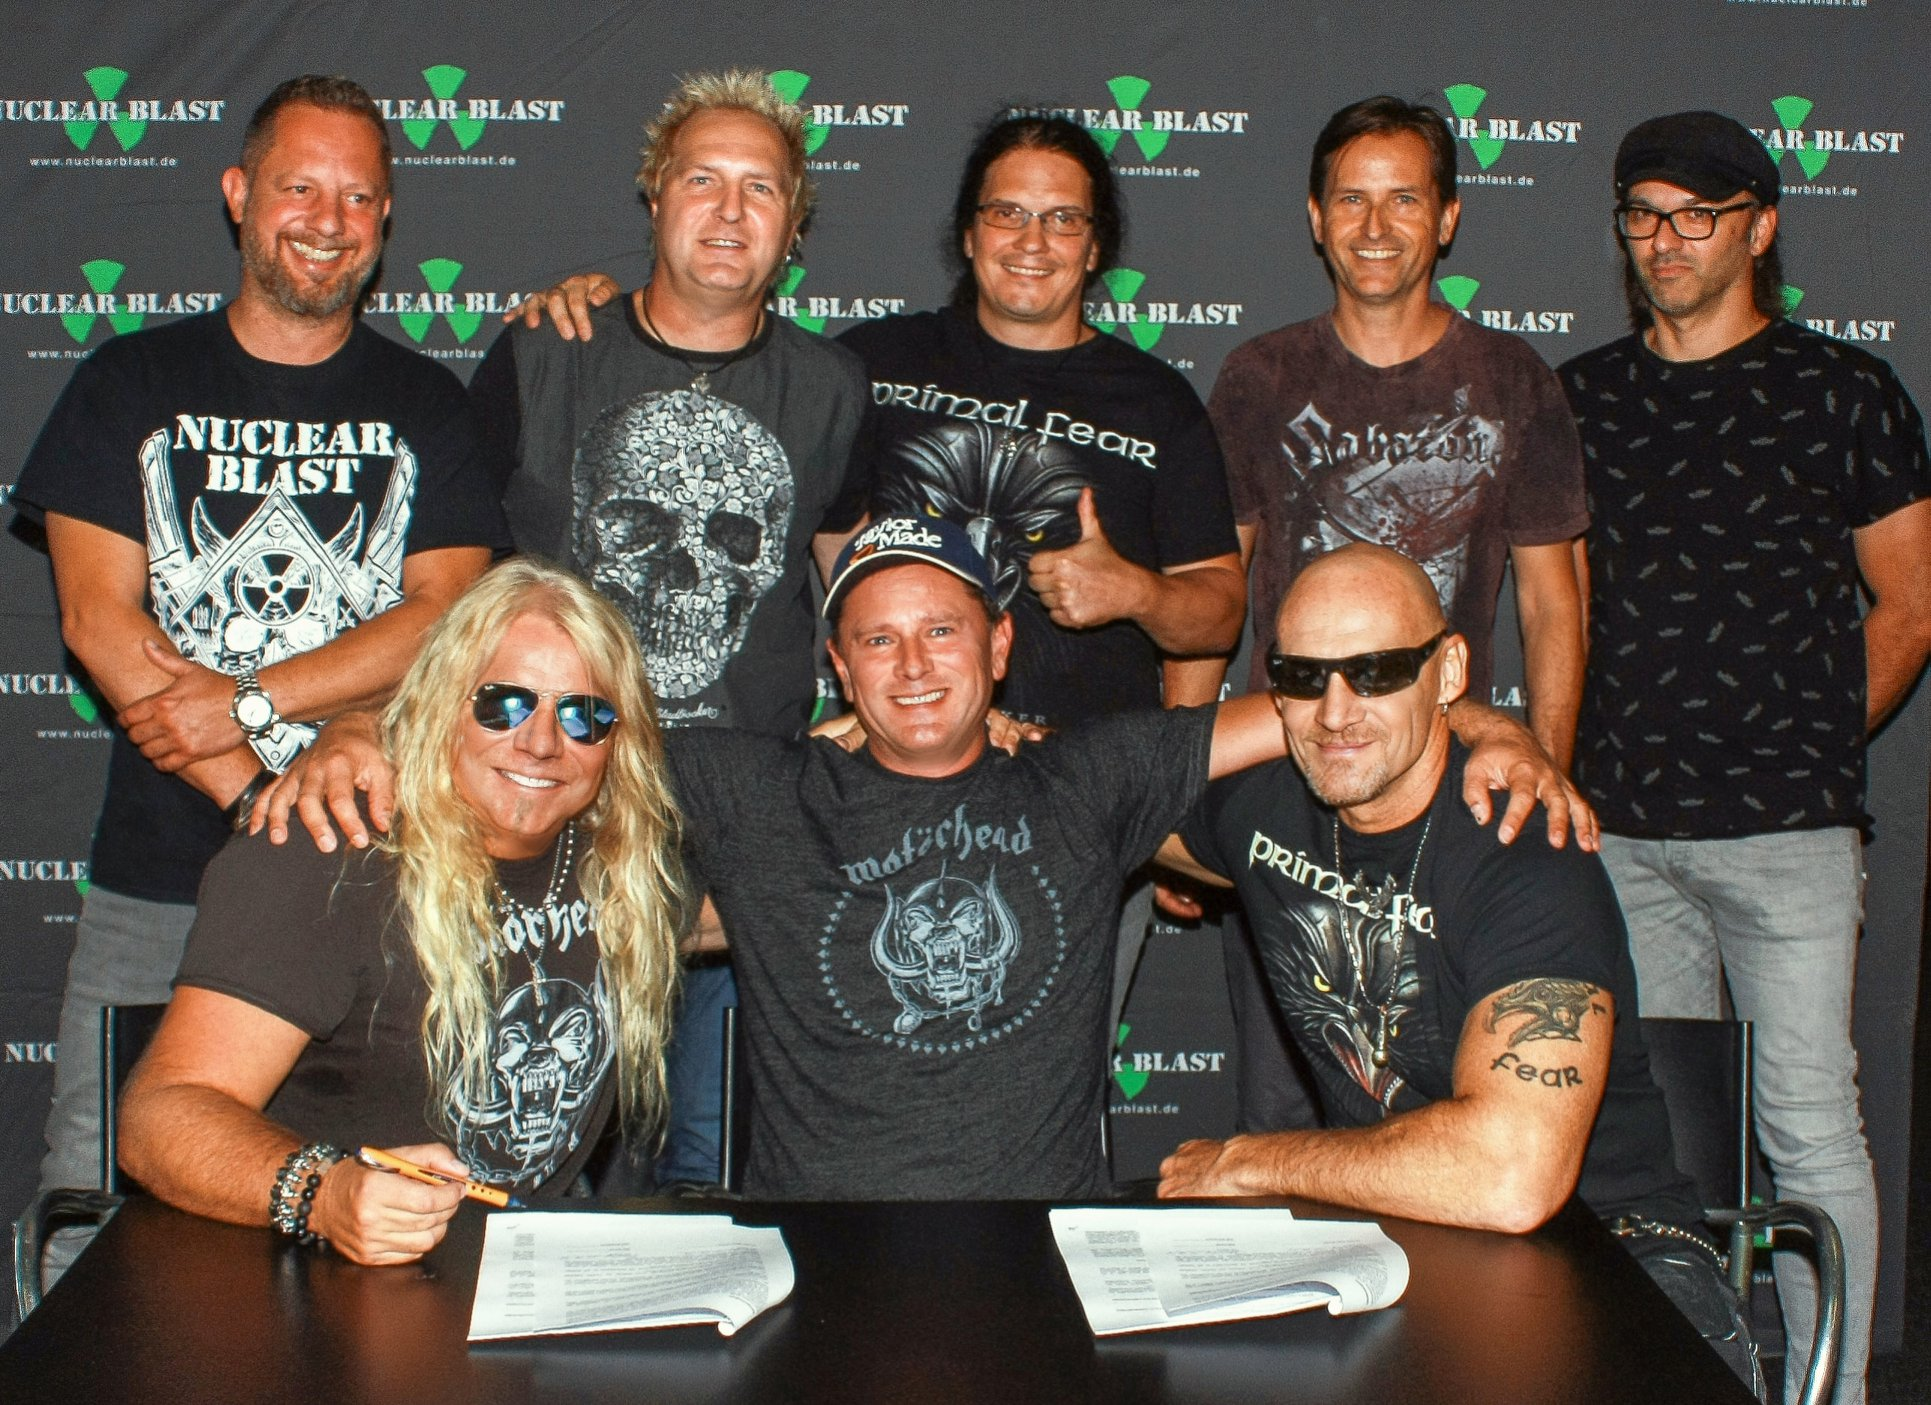 PRIMAL FEAR - Standing f.l.t.r.: Marcus Hammer (Label Manager, Nuclear Blast), Tom Naumann (Primal Fear), Markus Wosgien (A&R, Head of Promotion, Nuclear Blast), Yorck Eysel (Label Manager, Nuclear Blast), Michael Langbein (Head of Production, Nuclear Blast) Sitting: Mat Sinner (Primal Fear), Markus Staiger (Owner, Nuclear Blast), Ralf Scheepers (Primal Fear)